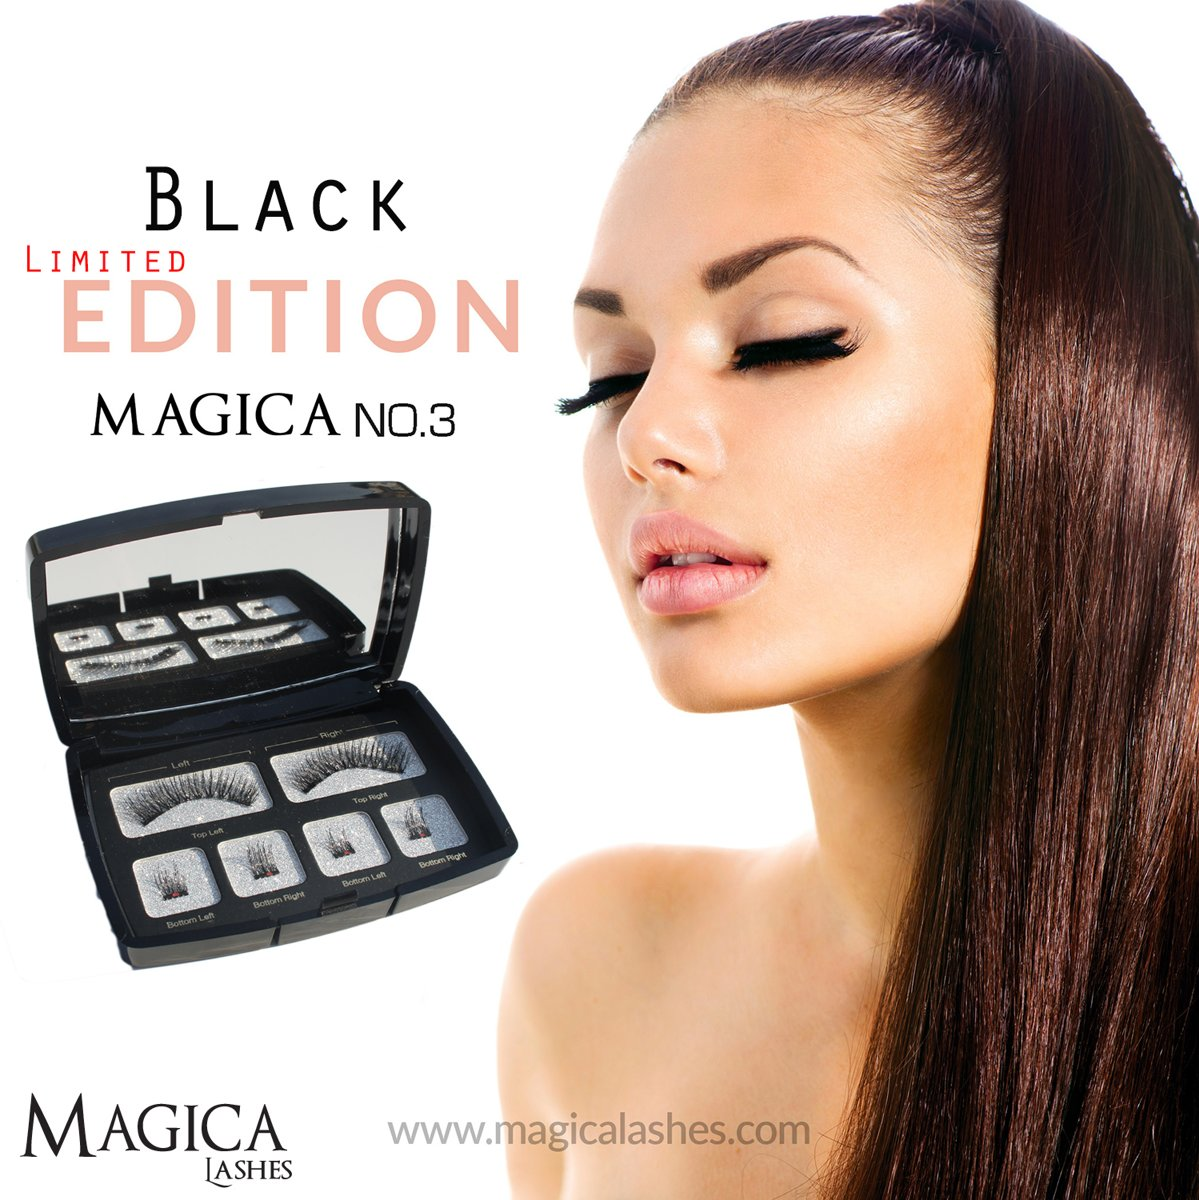 3D Magnetische Nepwimpers van Magica Lashes™ | 100% Silk fibers | Limited Black Edition | Easy Connect